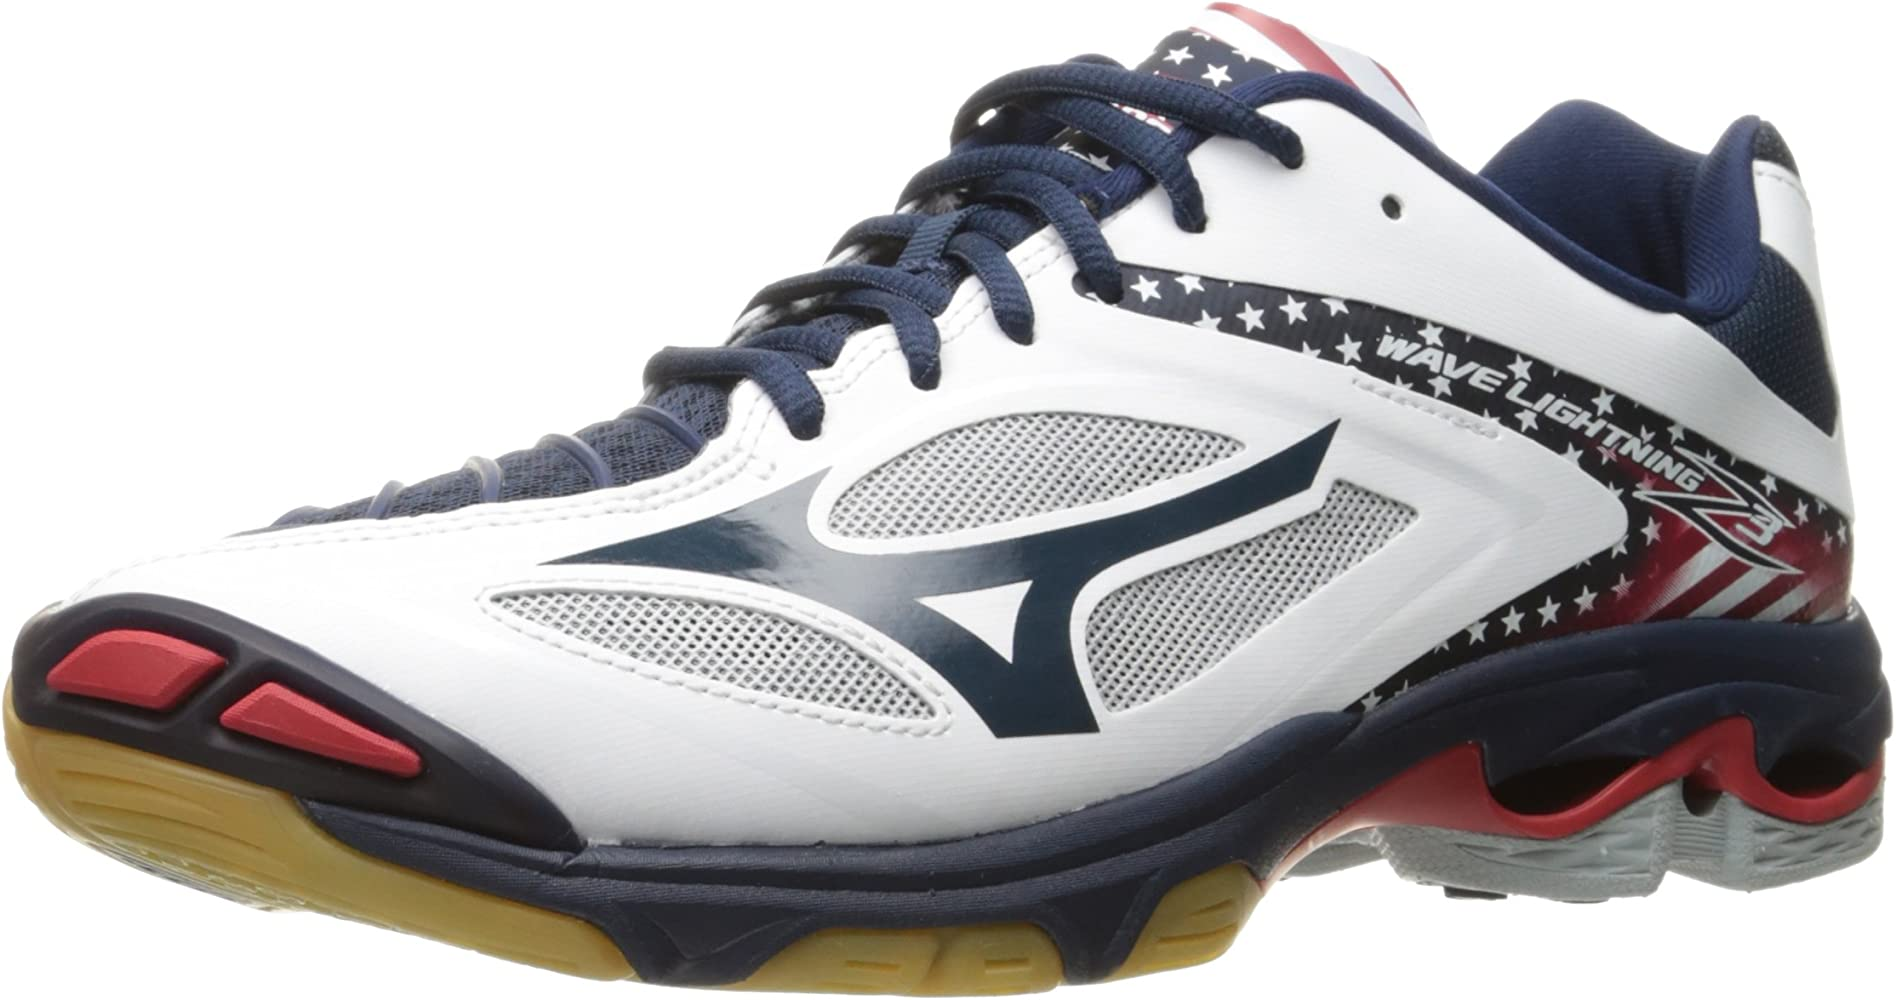 Mareo cero águila  Amazon.com | Mizuno Wave Lightning Z3 Mens Volleyball Shoes, Stars/Stripes,  10.5 D US | Basketball